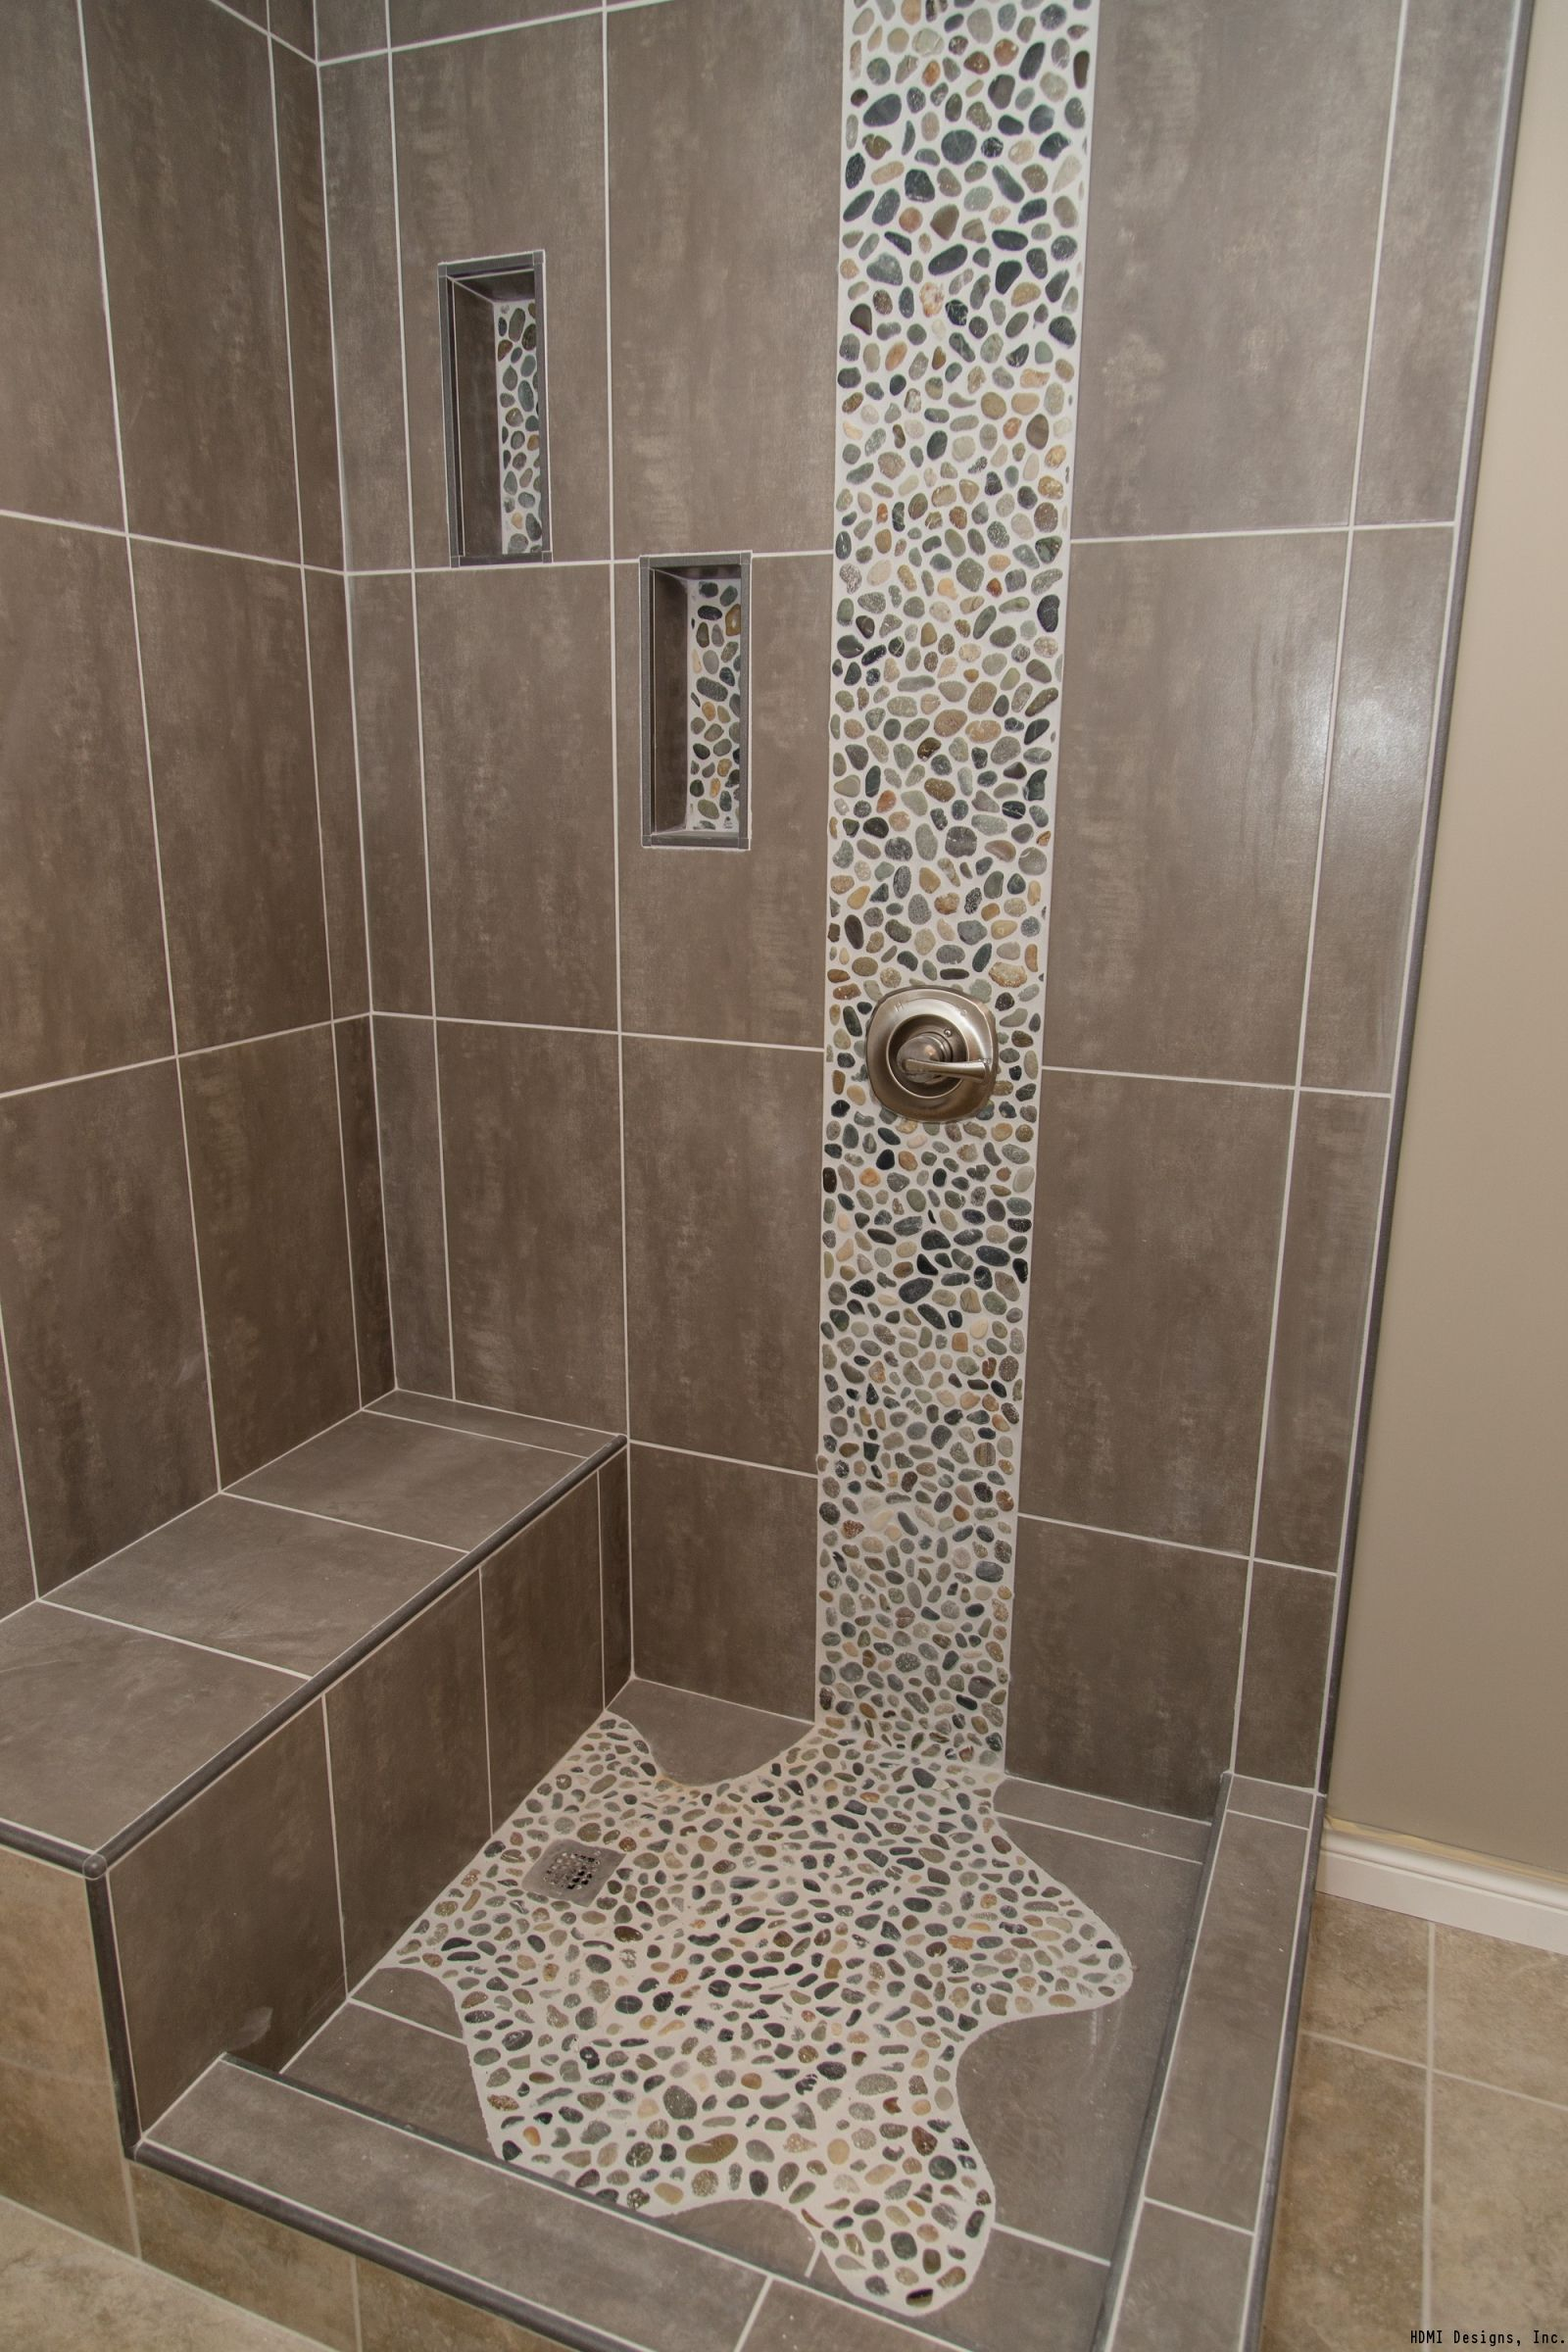 Bathroom designs pictures with tiles - Spruce Up Your Shower By Adding Pebble Tile Accents Click The Pin To Get Started